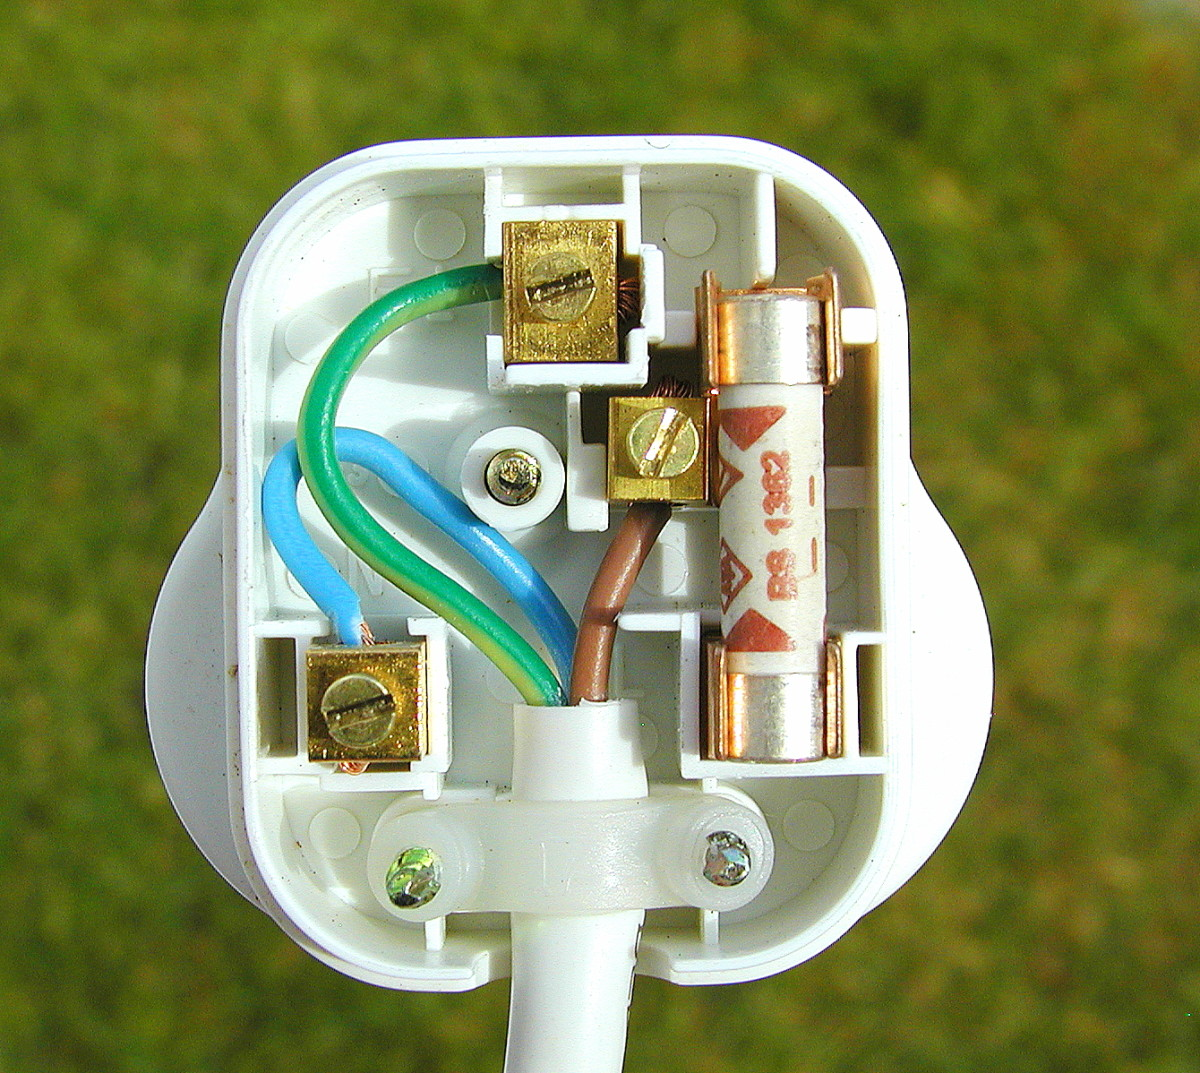 9 Easy Steps to Wiring a UK Plug Correctly and Safely